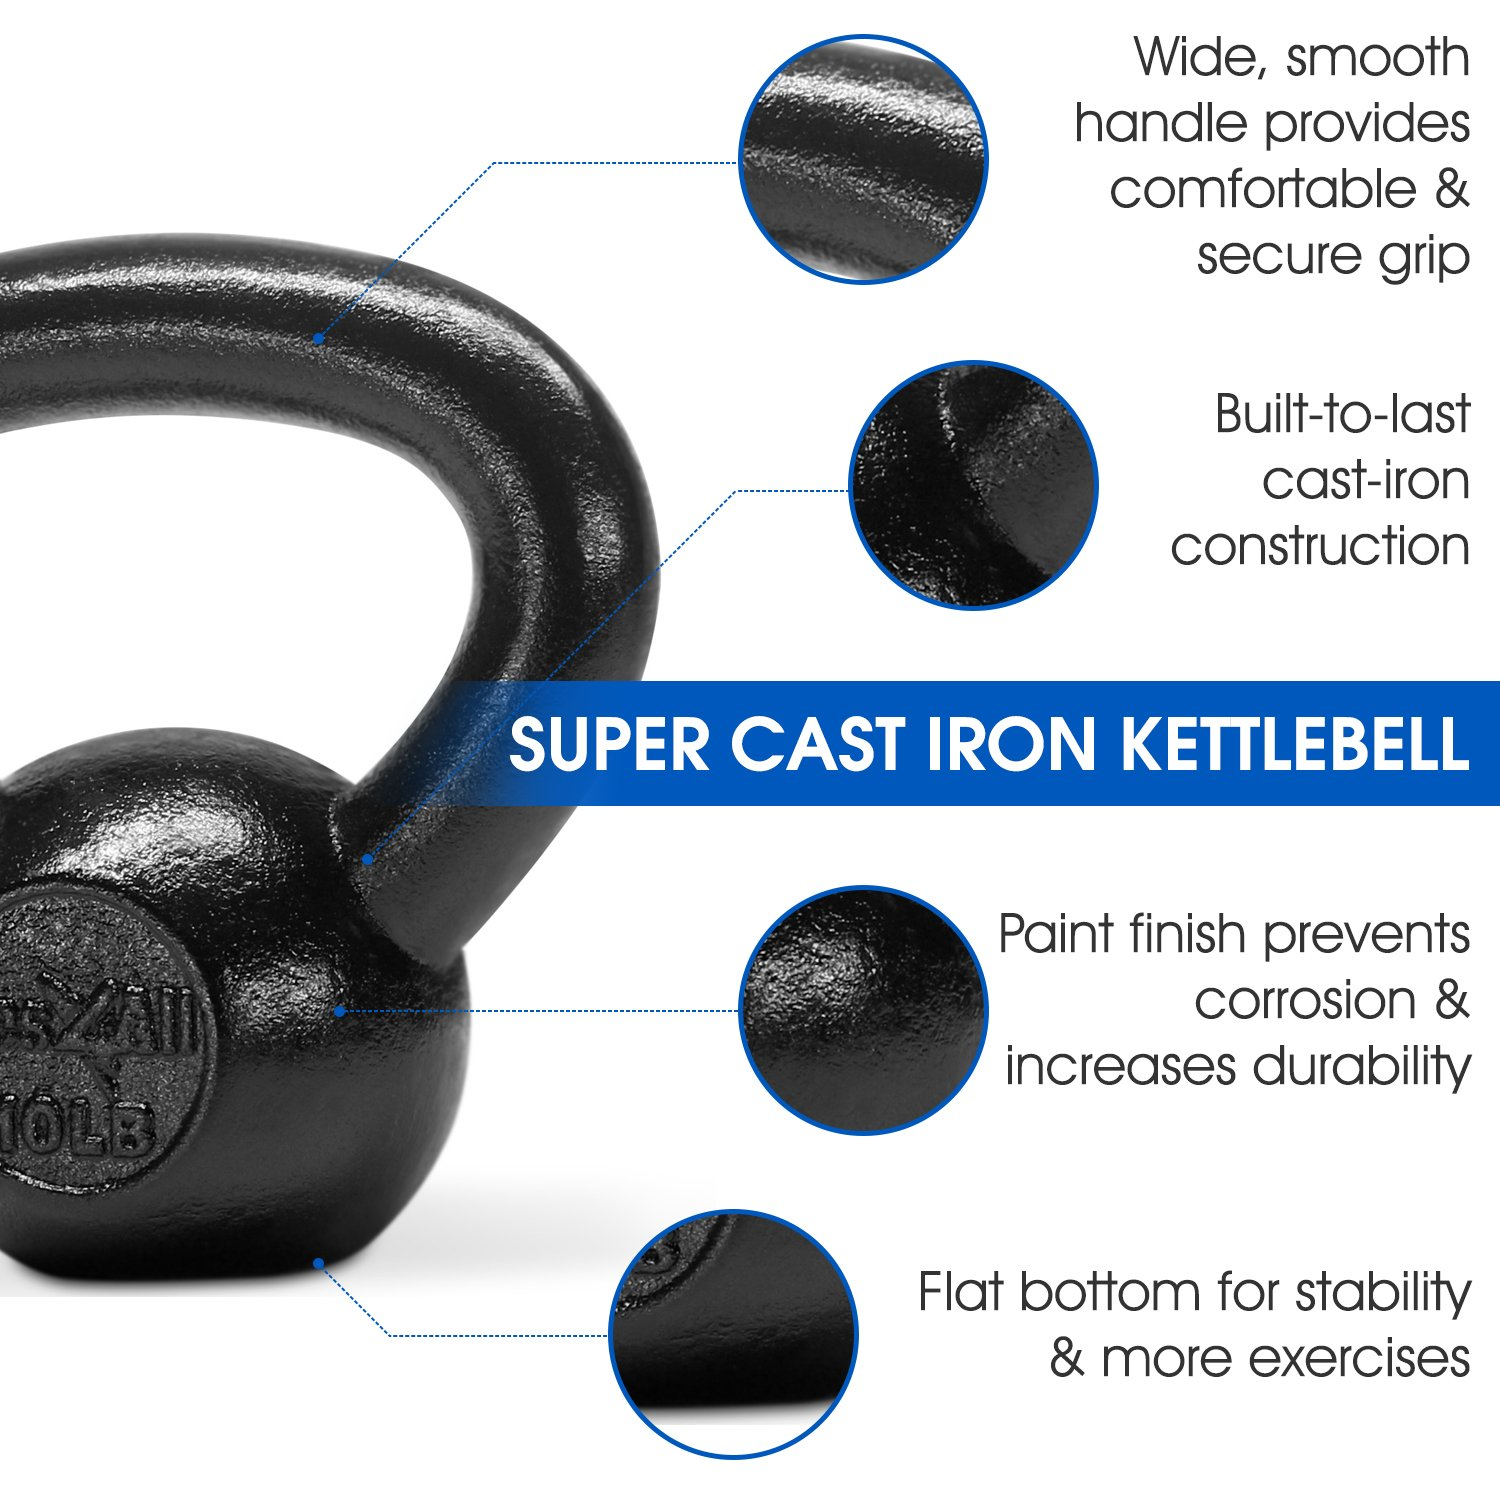 Yes4All Solid Cast Iron Kettlebell Weights Set – Great for Full Body Workout and Strength Training – Kettlebell 10 lbs (Black) by Yes4All (Image #4)